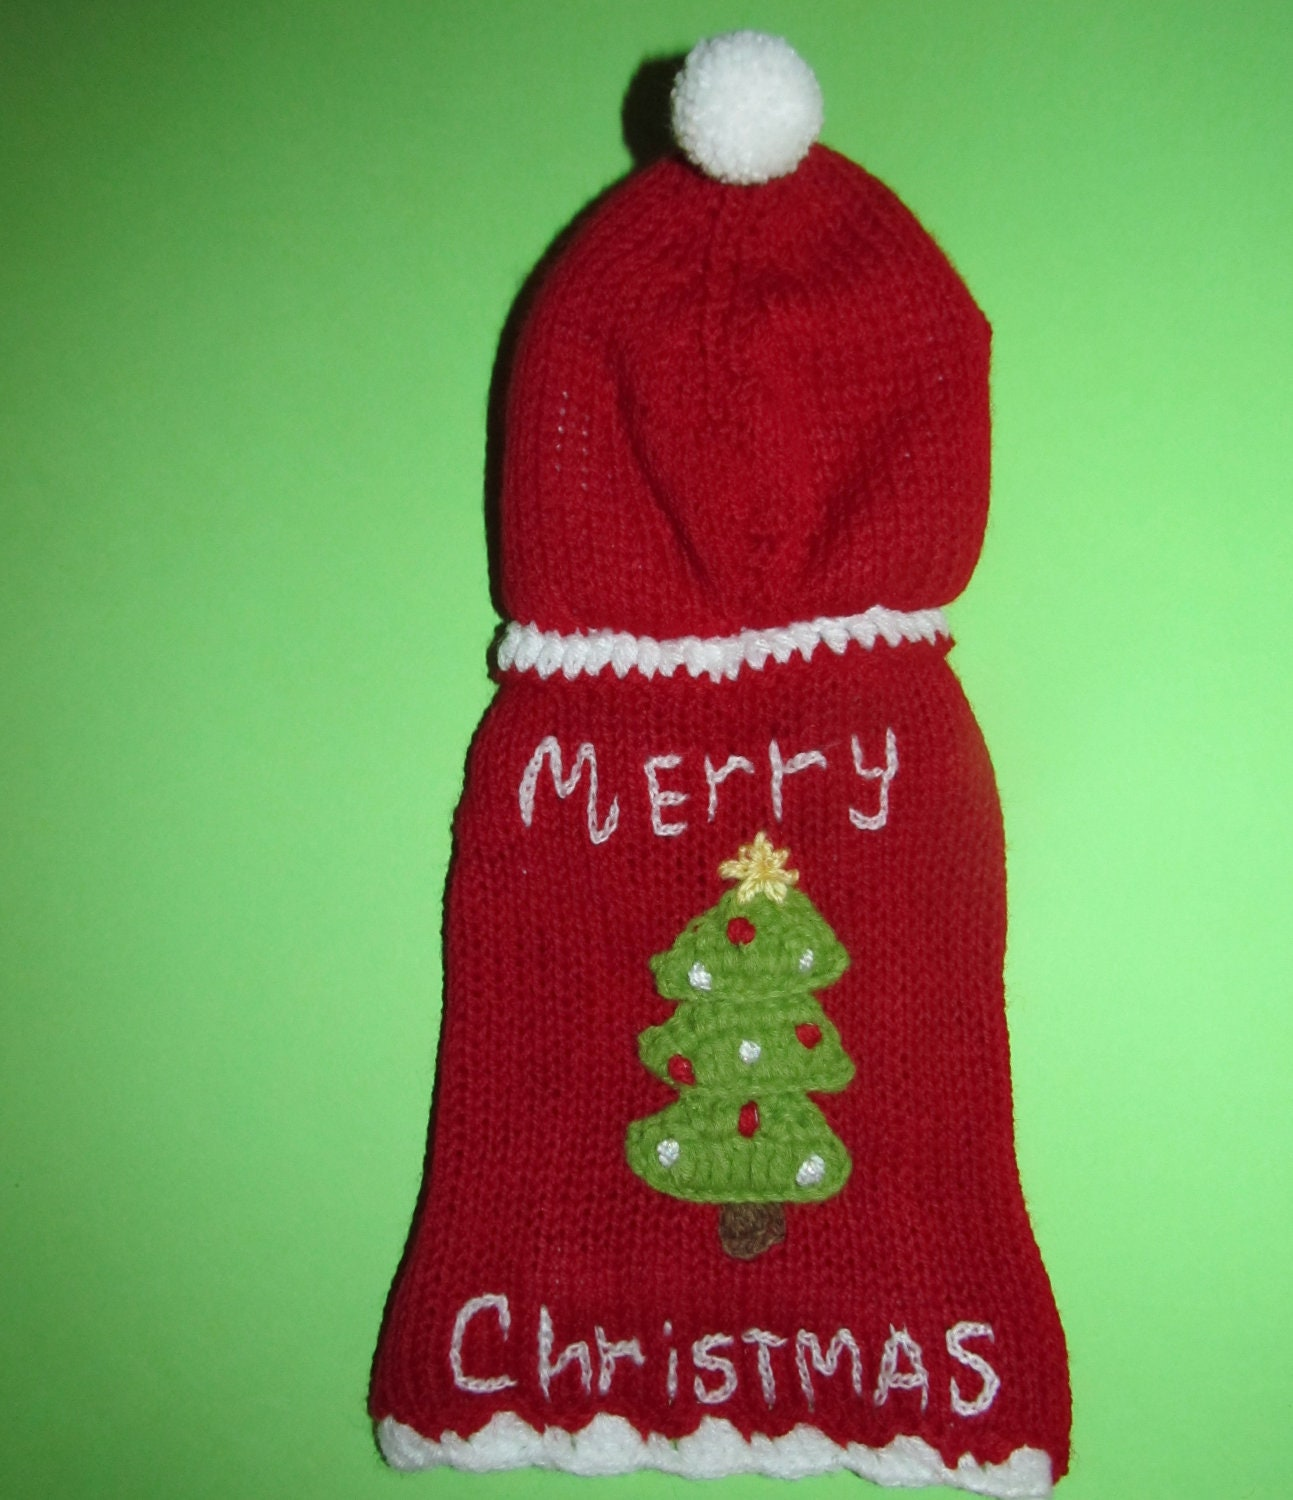 Christmas dog sweater knitted dog jumper puppy by ADogFashion